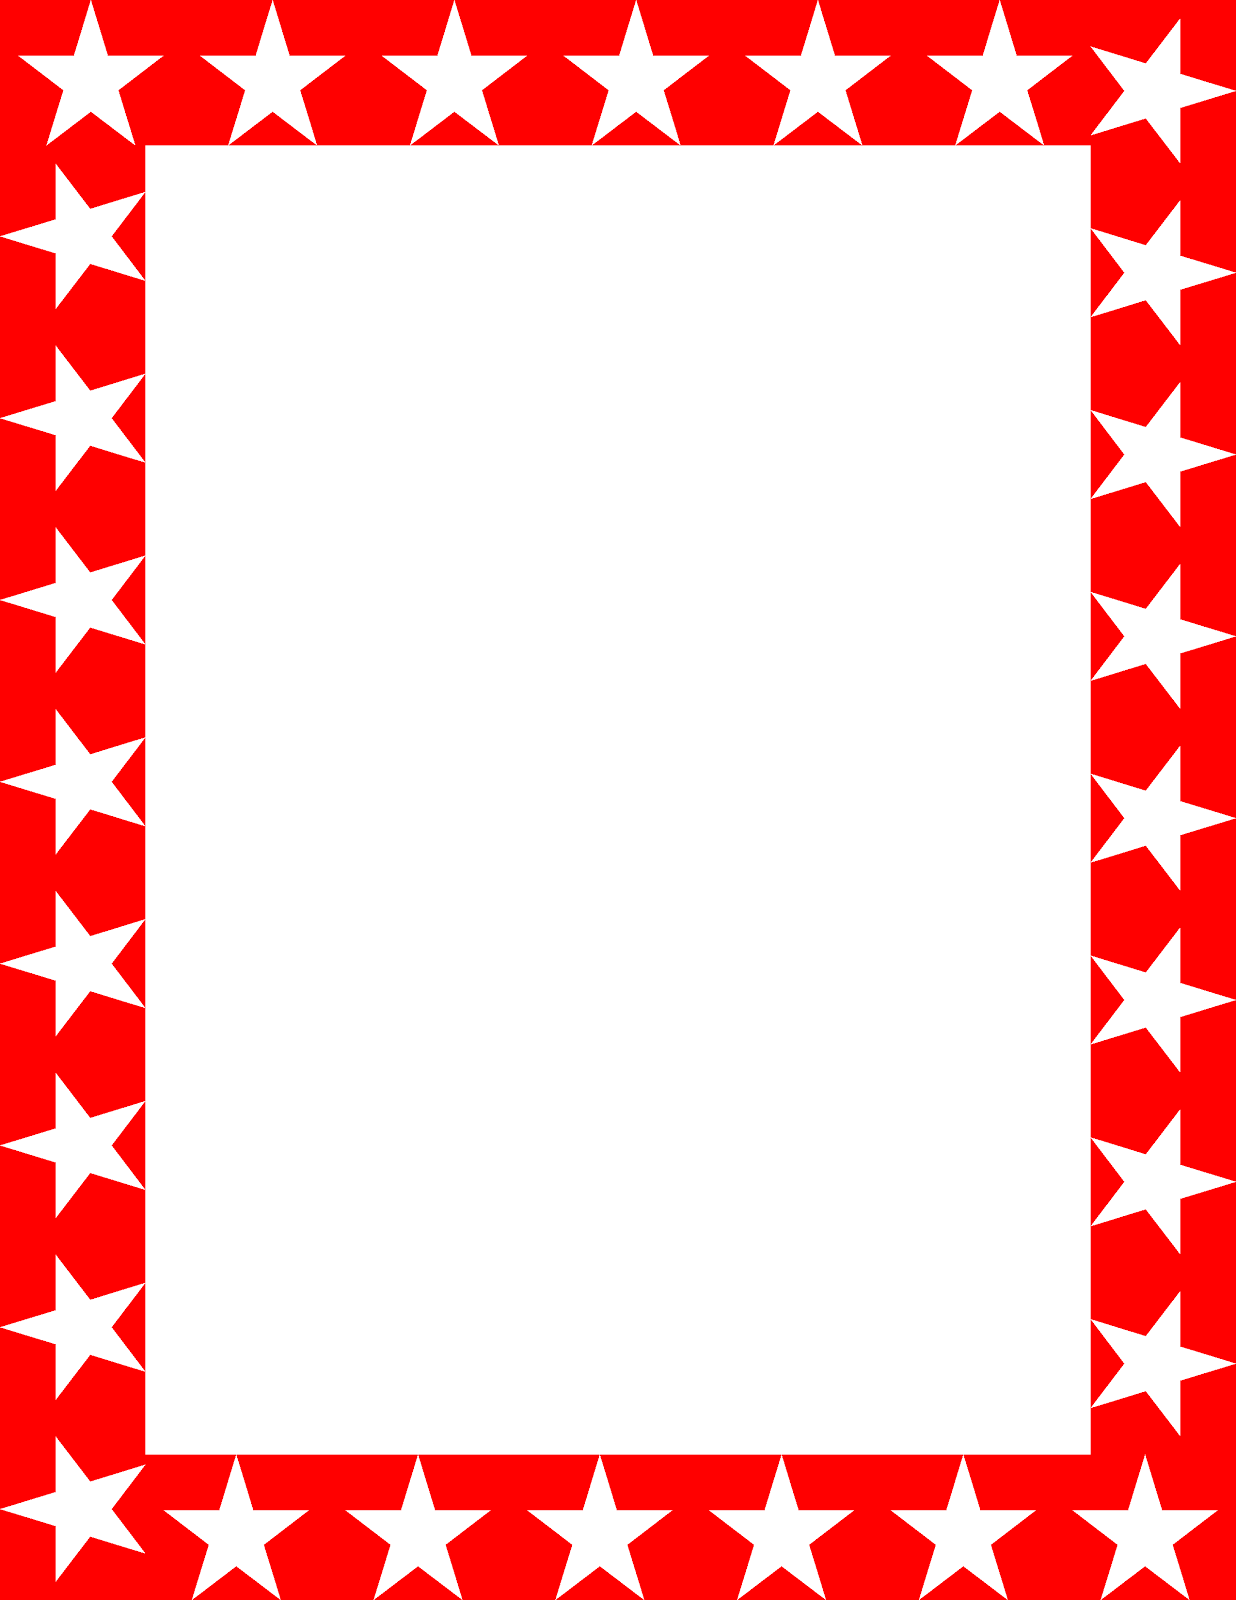 1236x1600 Image Of Star Border Clipart